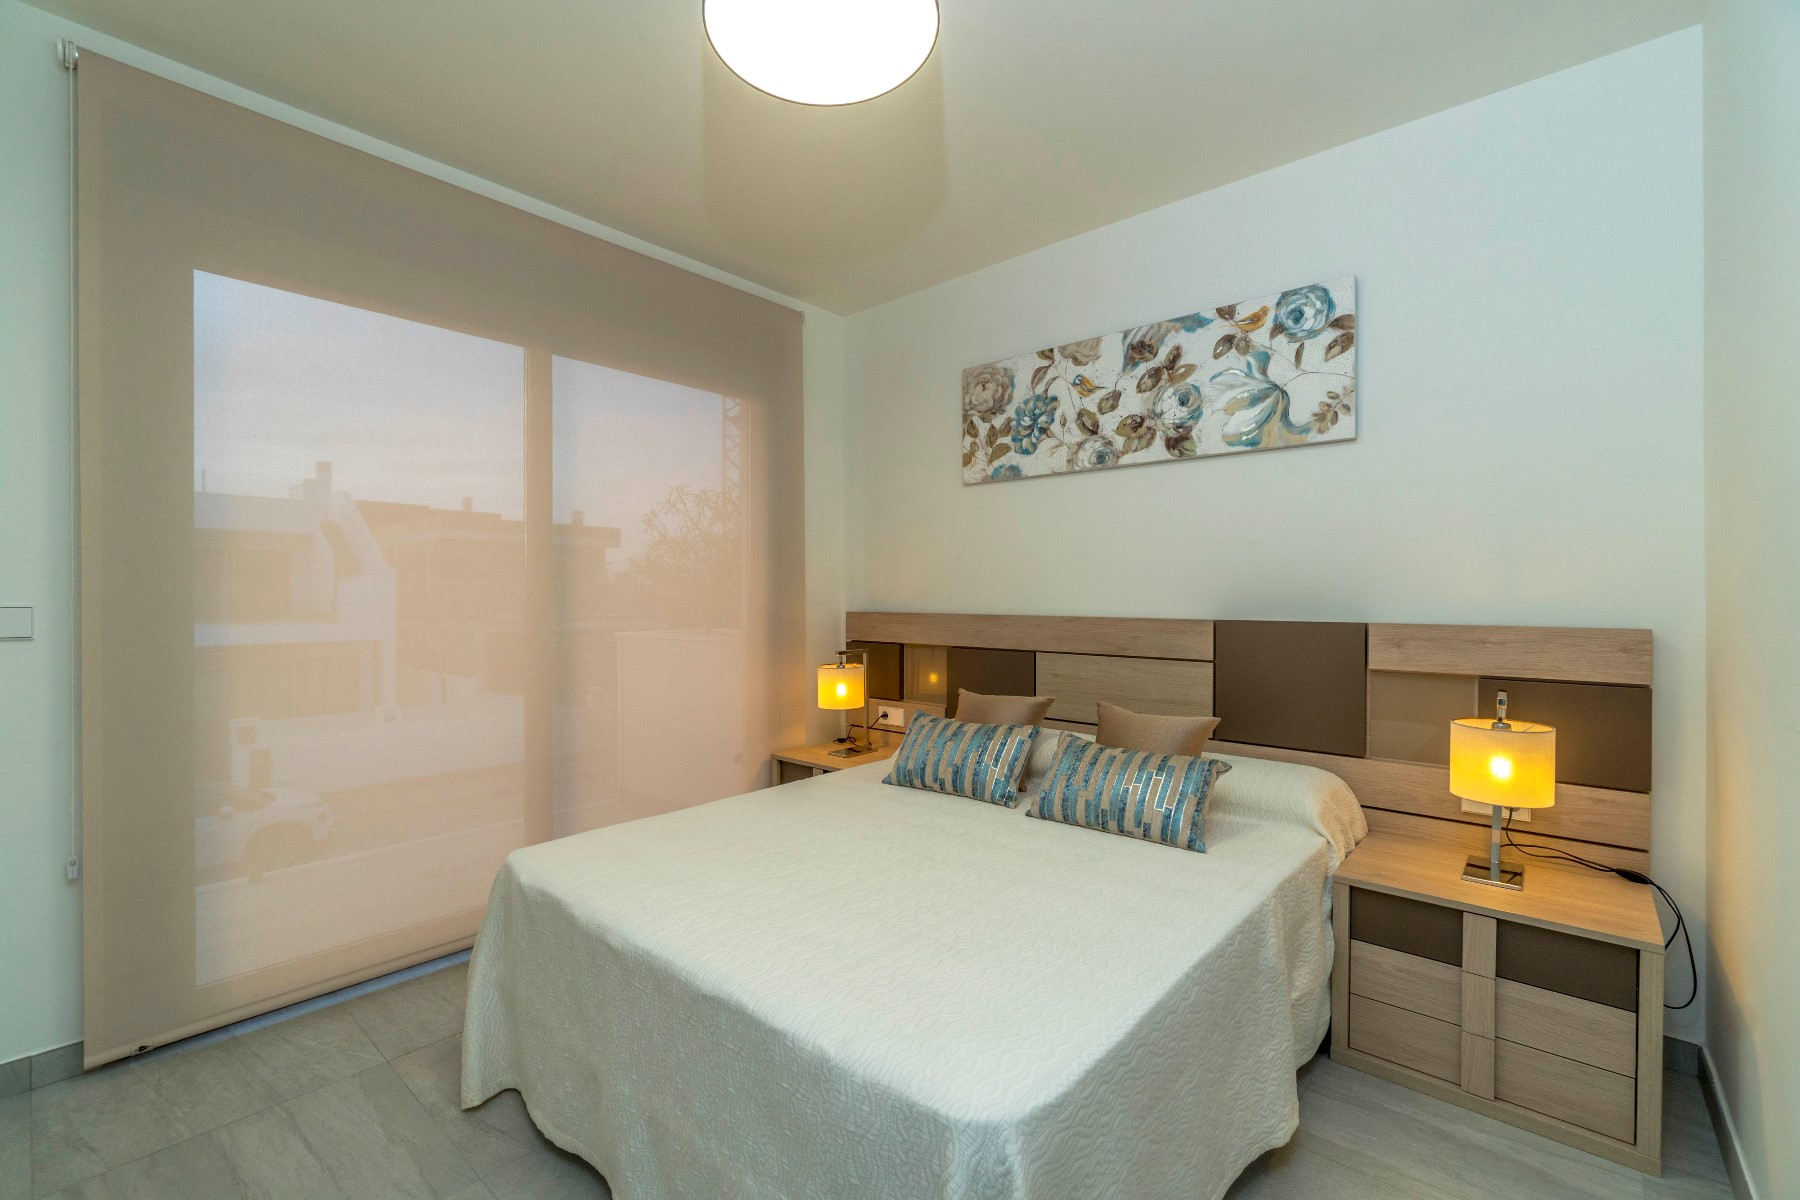 3 bed Townhouse in San Pedro del Pinatar image 5